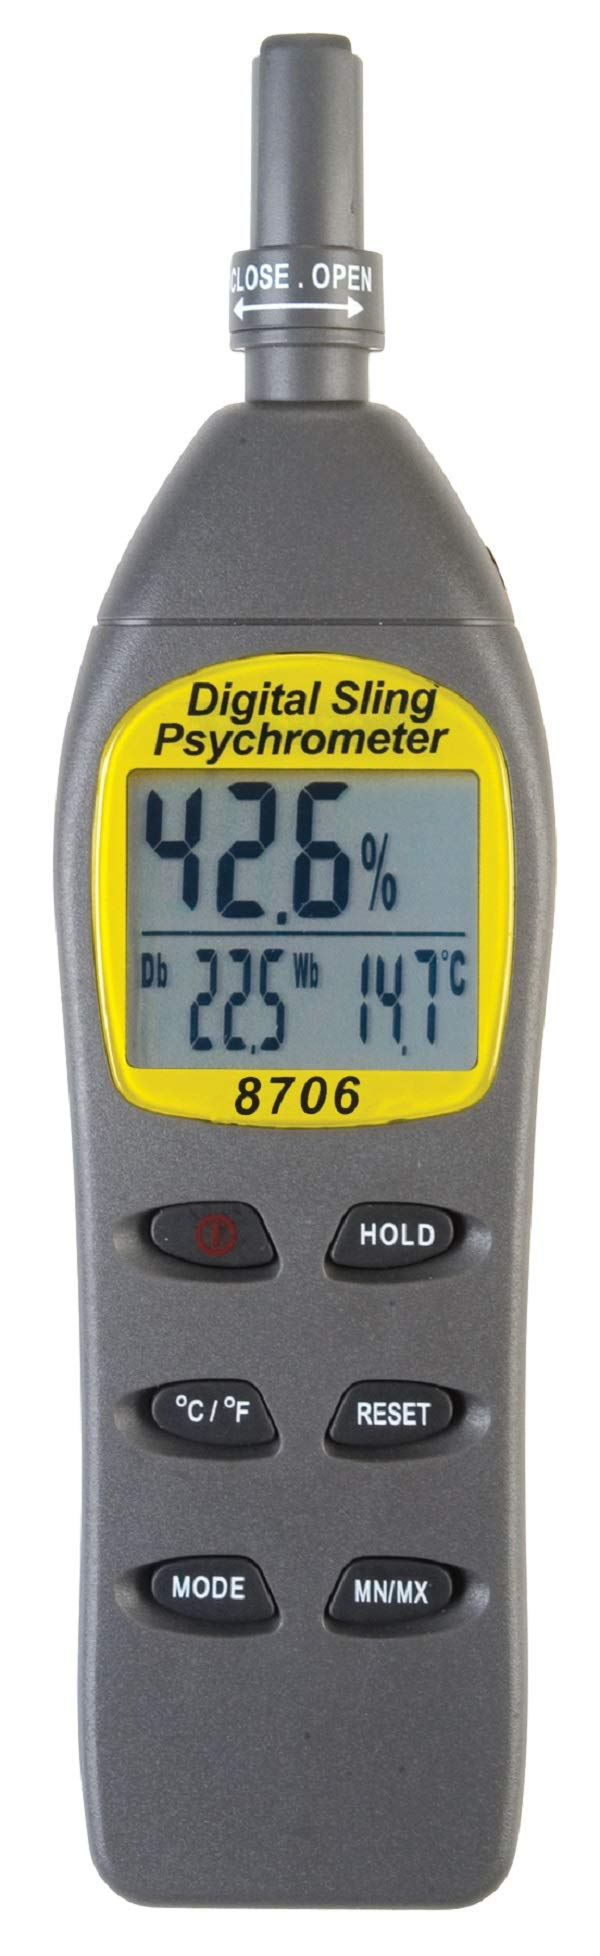 REED Instruments 8706 Digital Psychrometer/Thermo-Hygrometer, (Wet Bulb, Dew Point, Temperature, Humidity) by REED Instruments